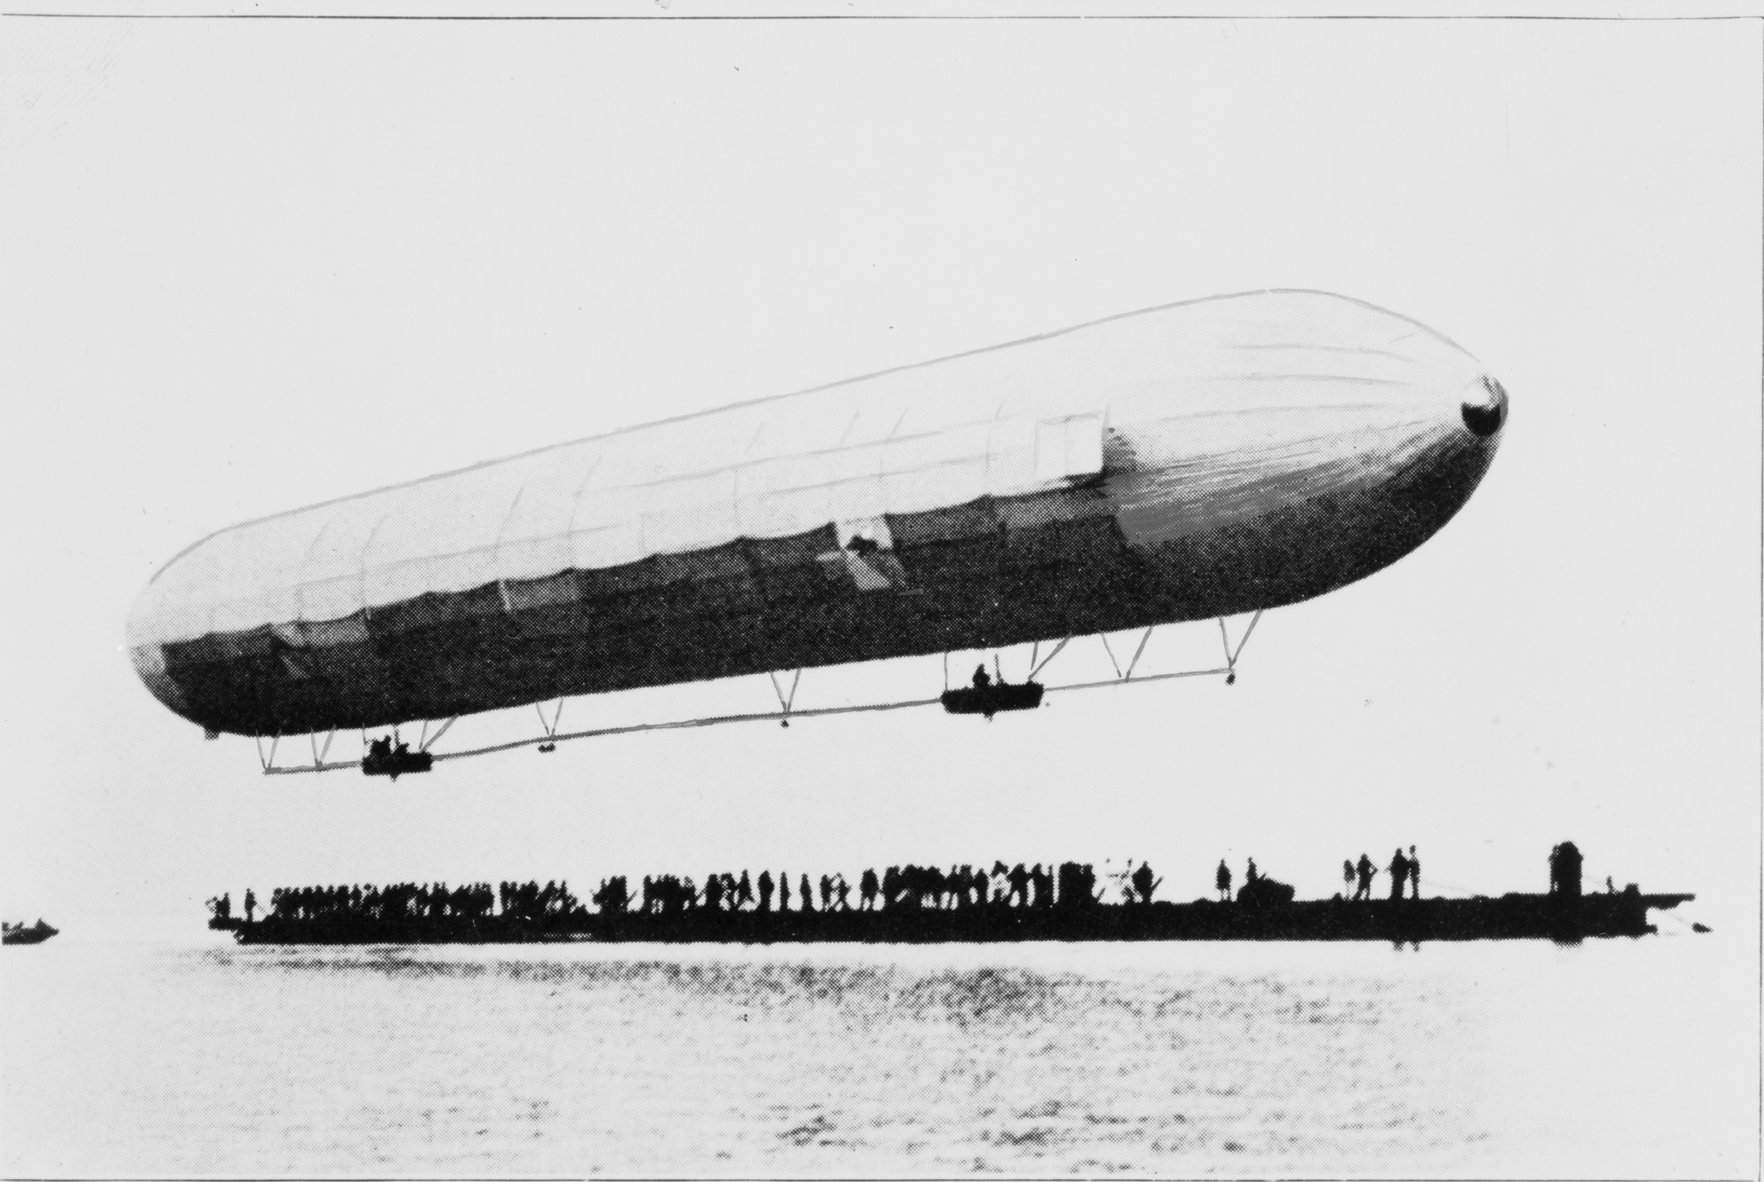 The first ascent of the LZ-1 – July 2, 1900